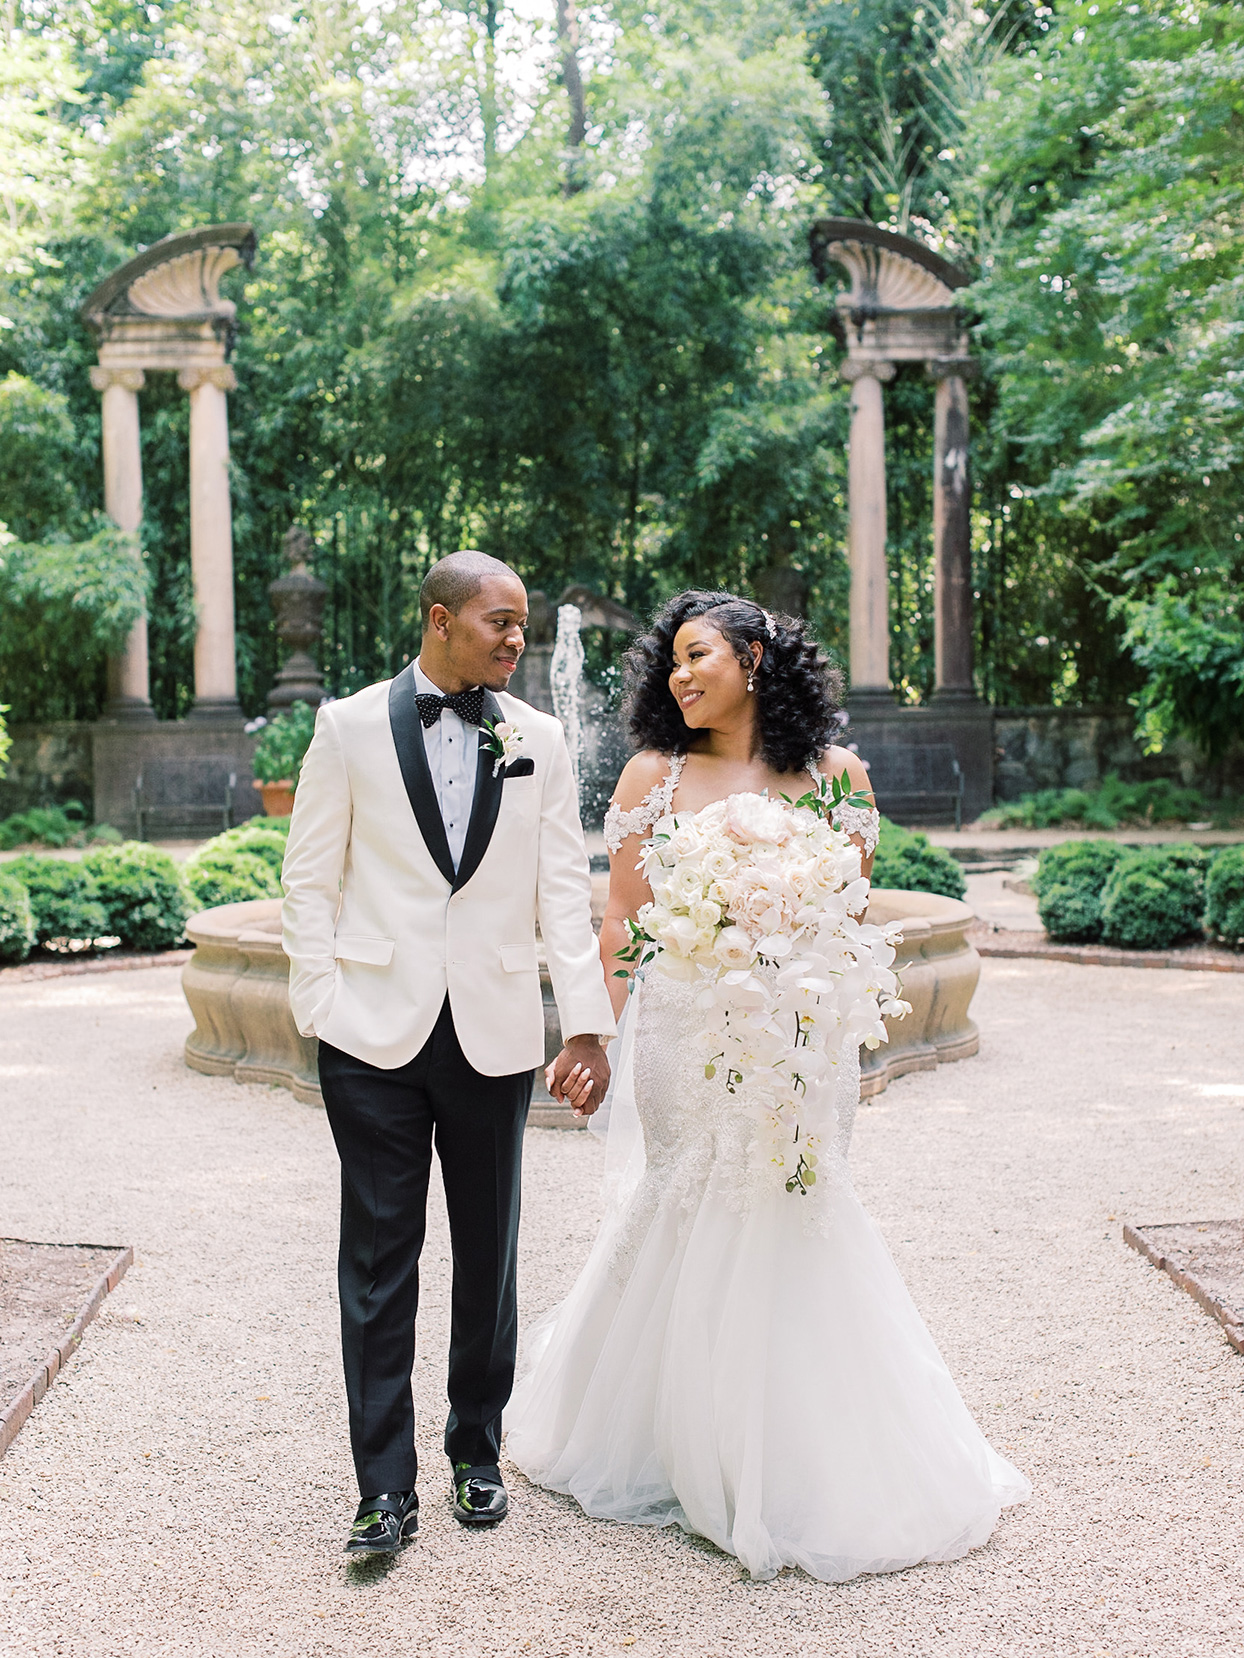 This Wedding in Atlanta—a Summertime Garden Soirée—Exemplified Southern Elegance